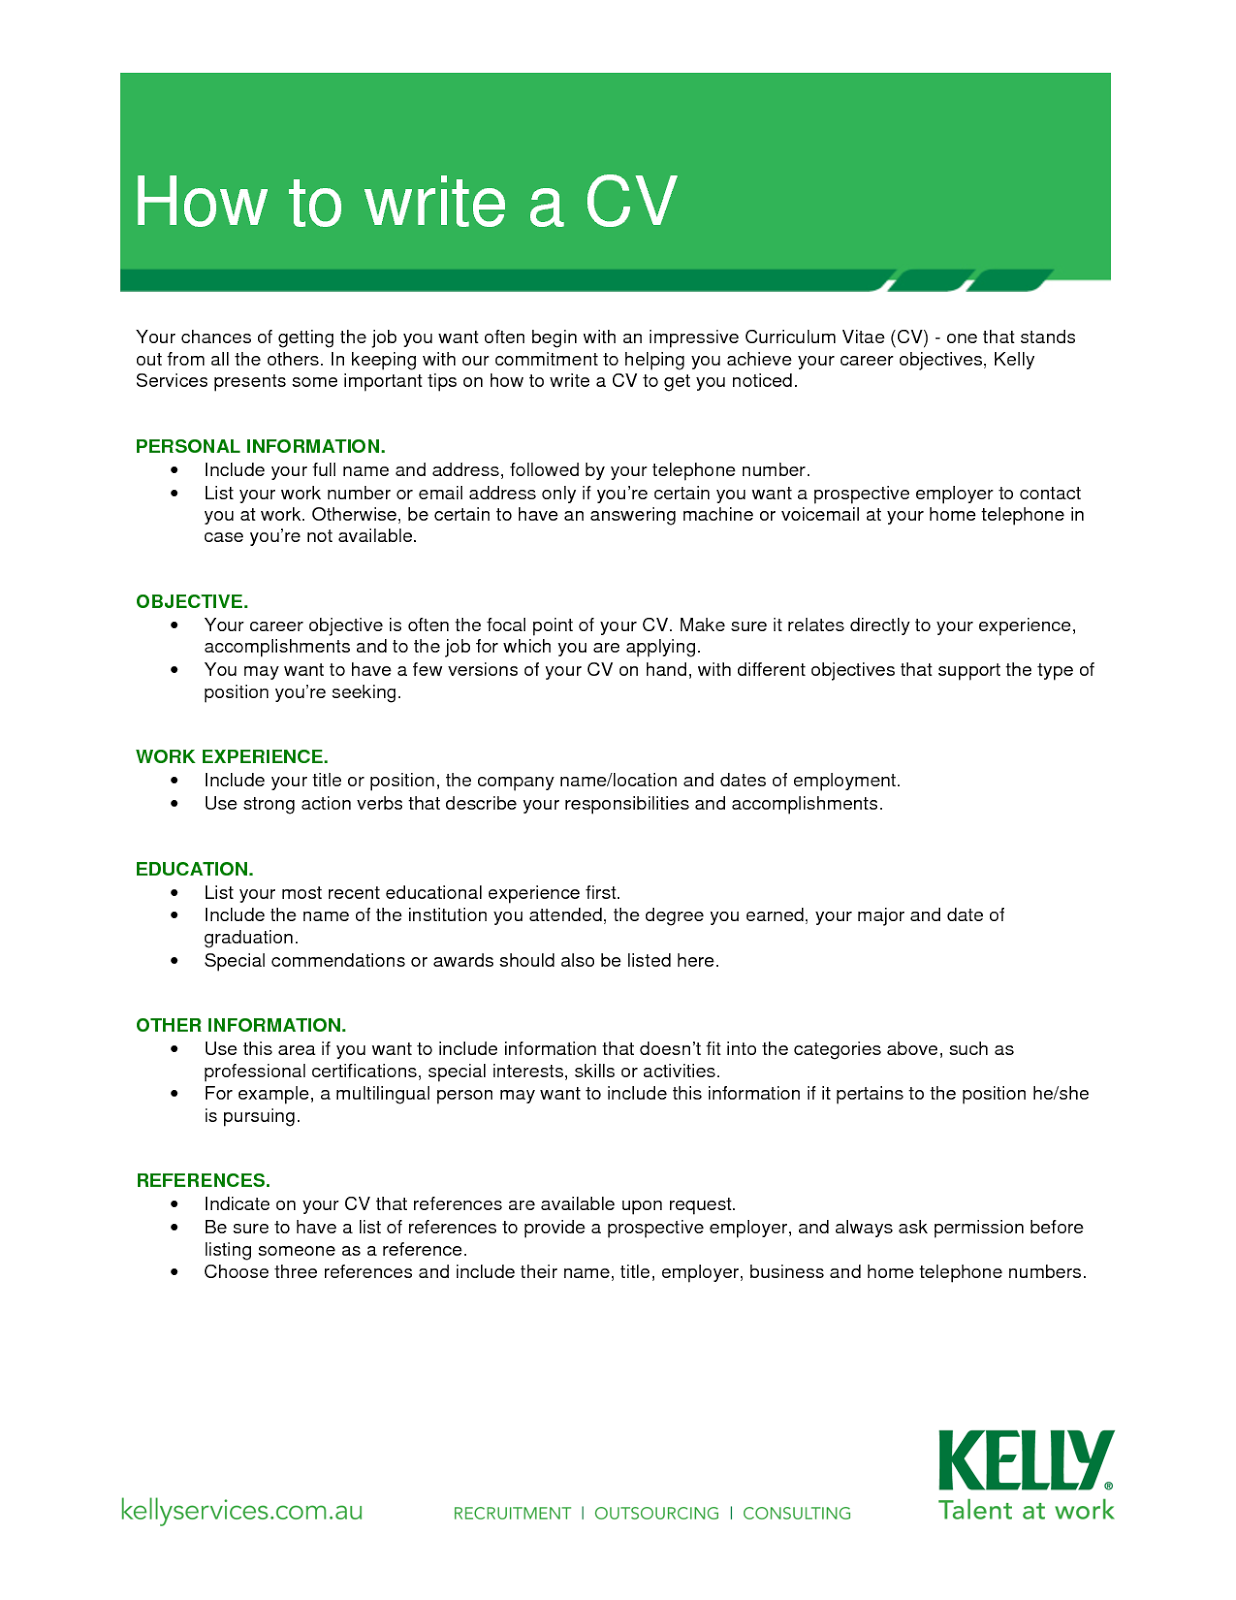 How To Write A Detailed Resume Let 39s Share How To Write A Cv Curriculum Vitae A